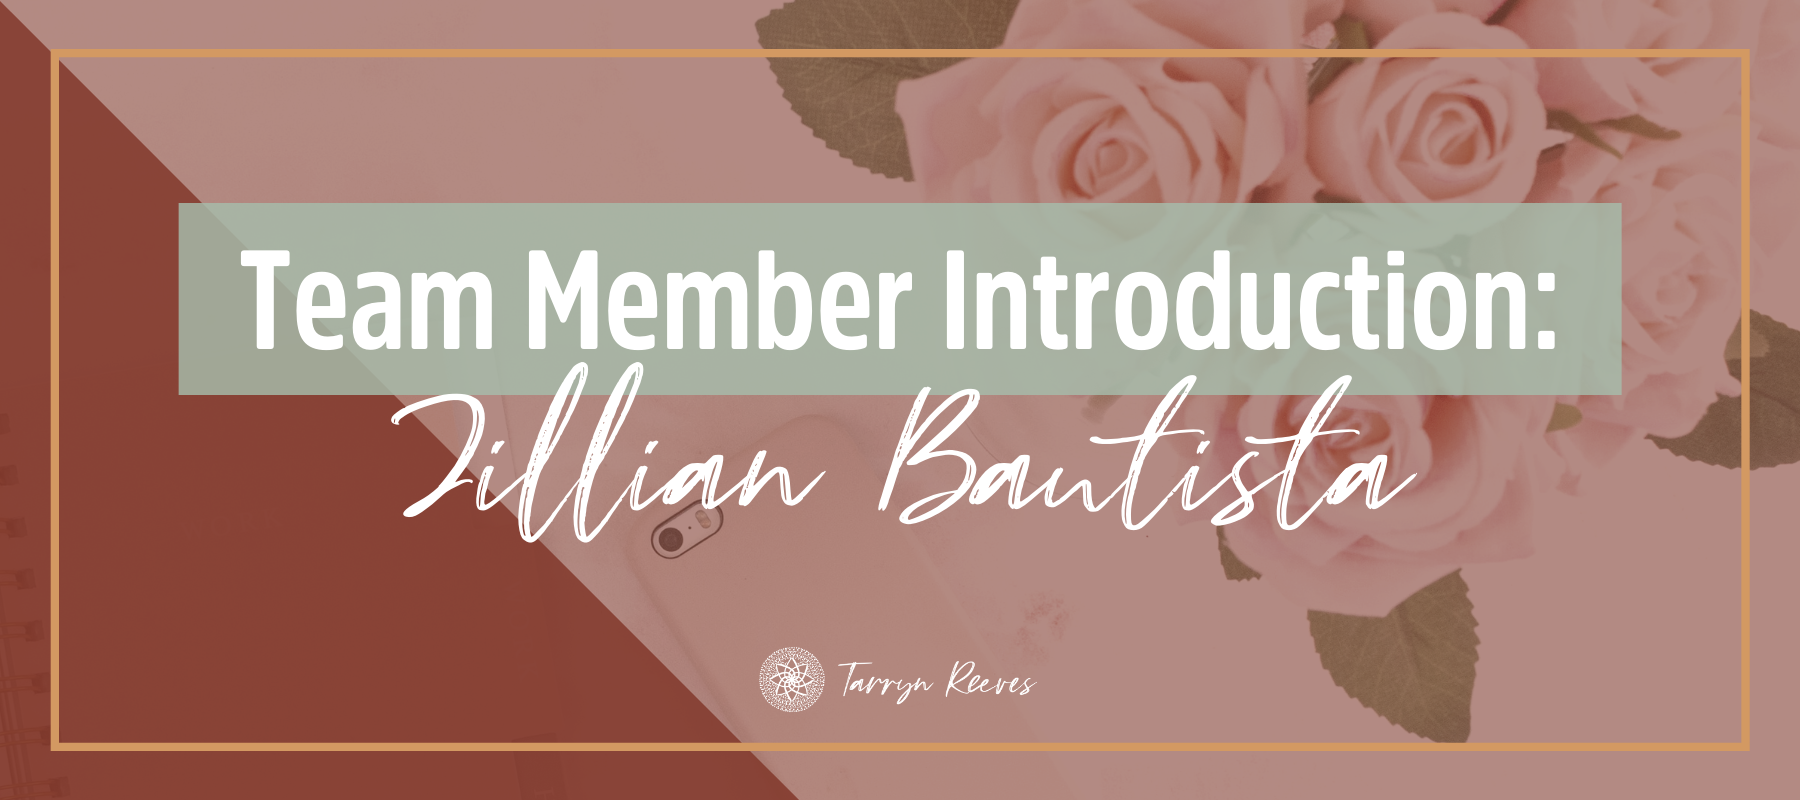 Team Member Introduction - Jillian Bautista